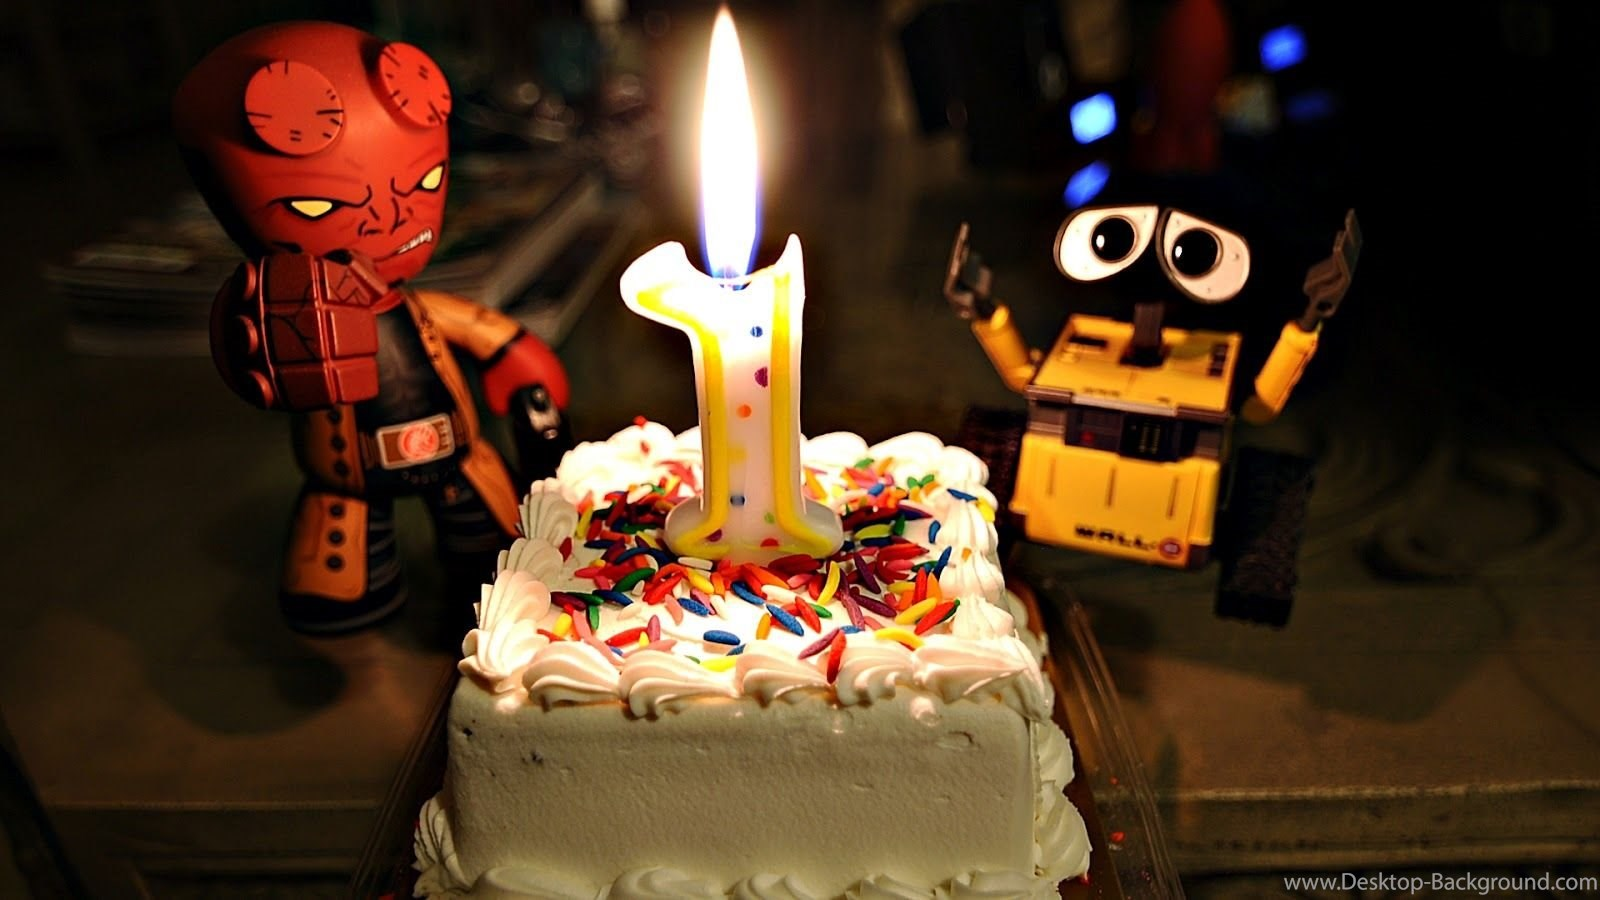 funny birthday wallpaper ; 764662_happy-birthday-wallpapers-funny-wallpapers-cave_1600x900_h